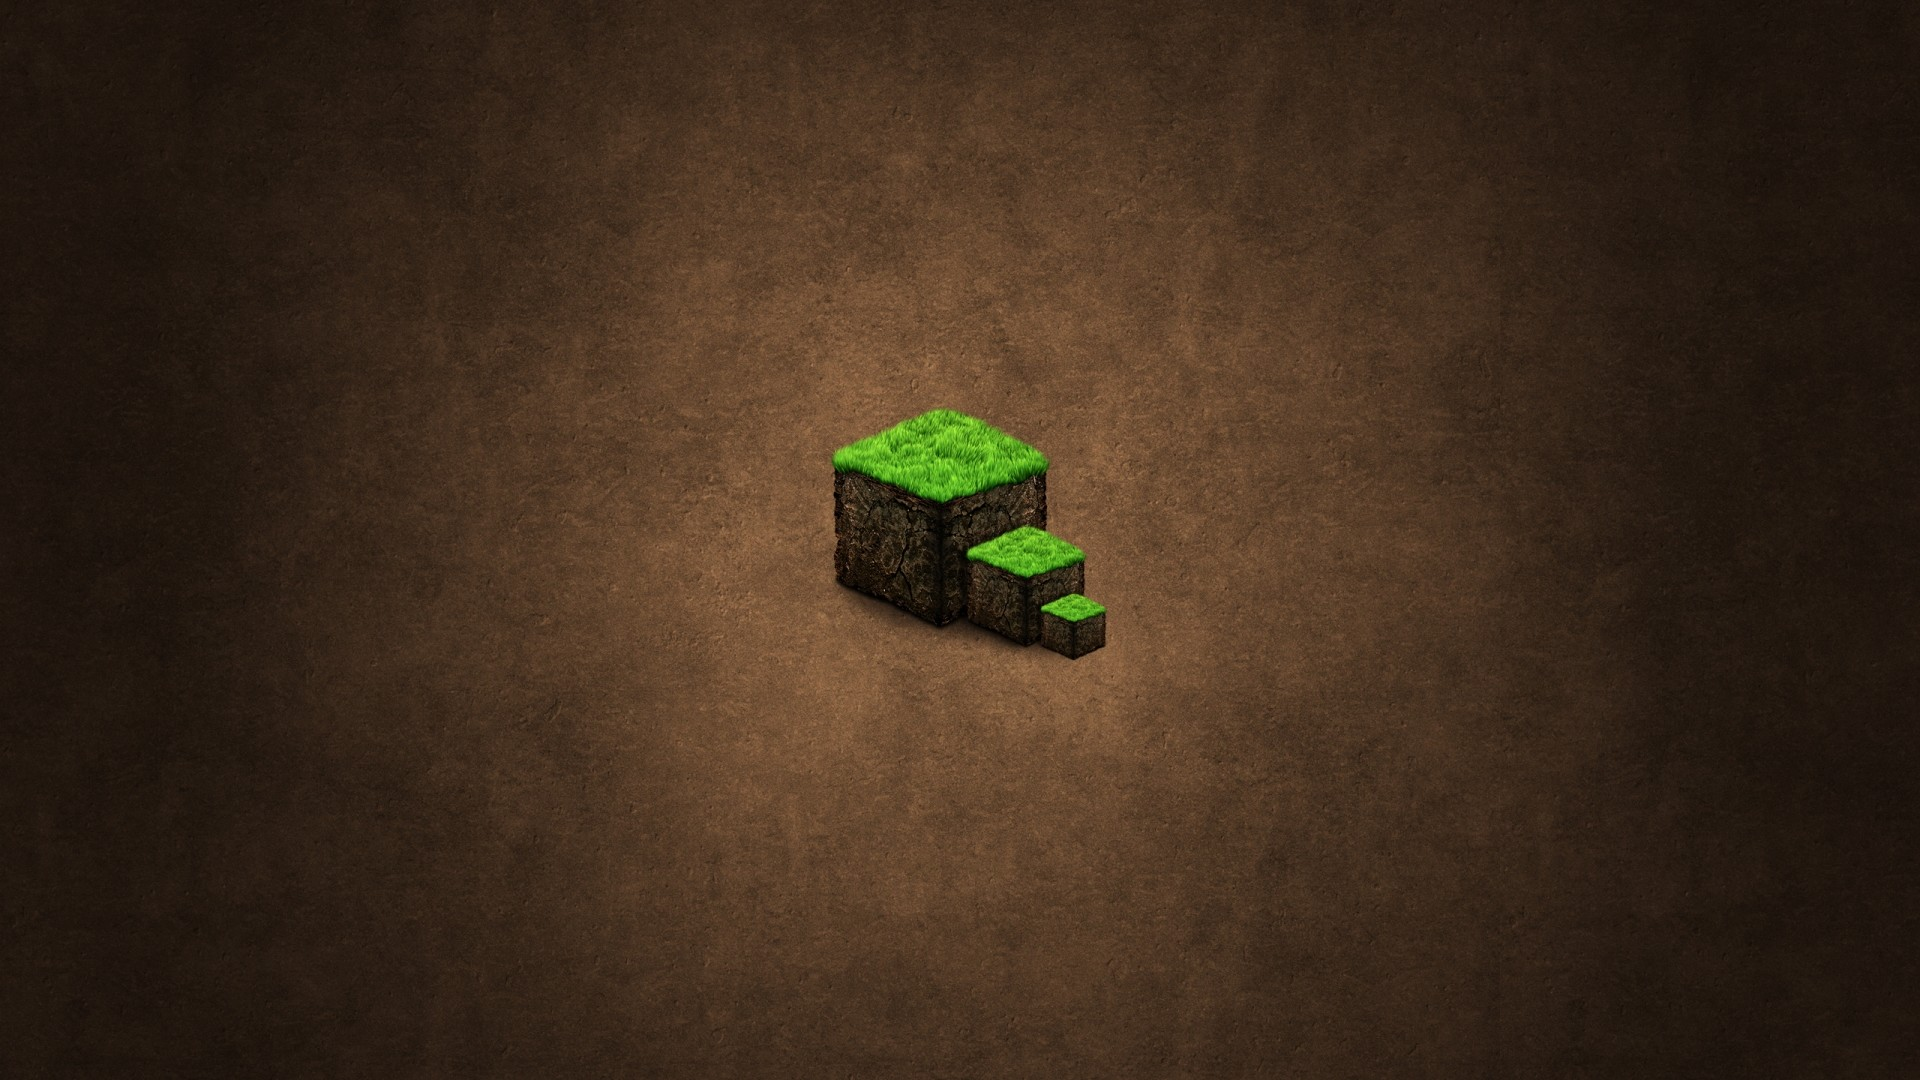 1920x1080 HD Herobrine Wallpapers 1920A 1080 Minecraft 1080p 41